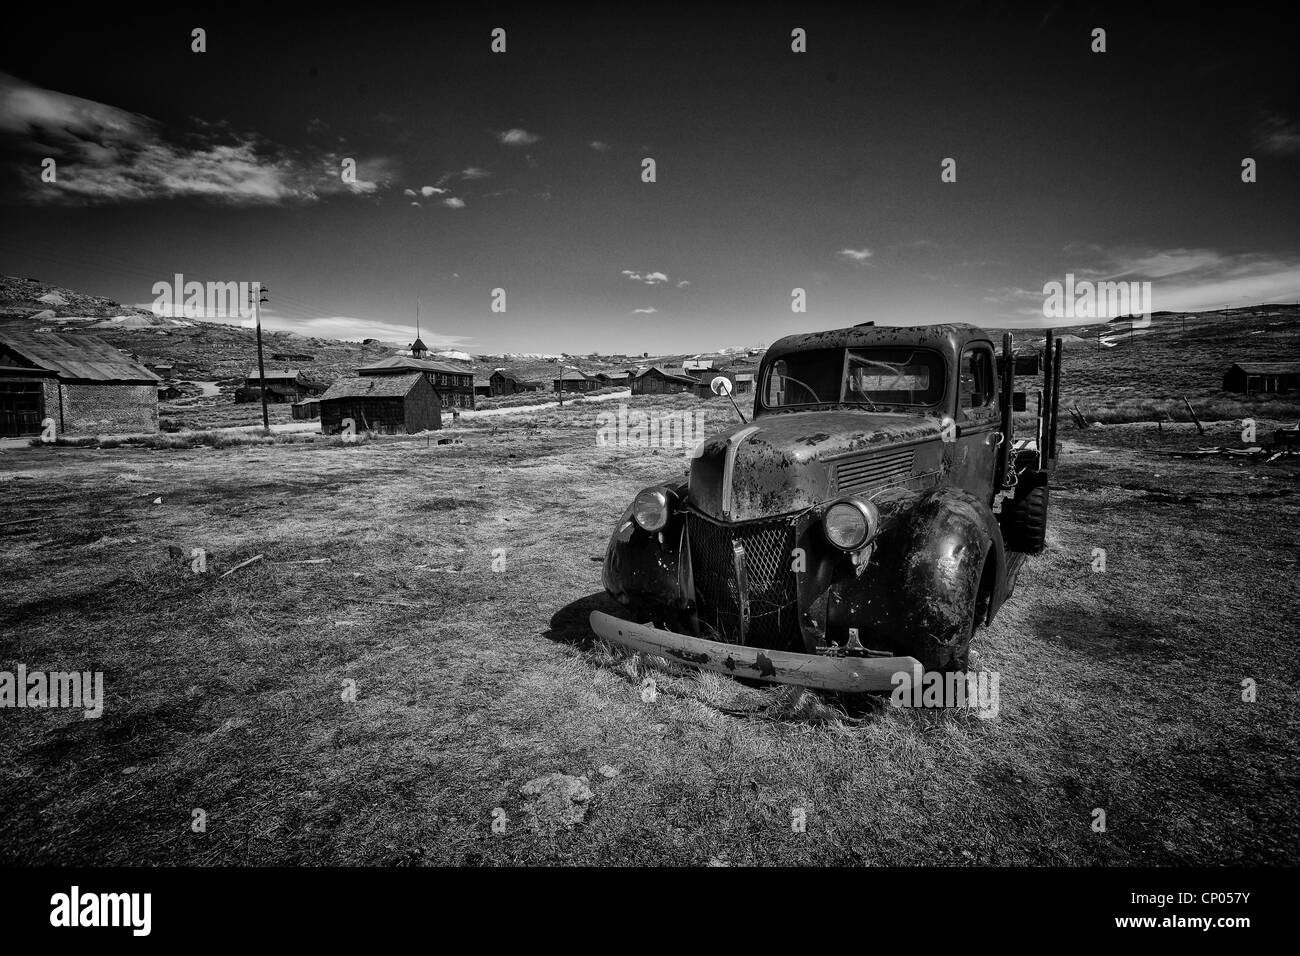 Car wreck at Bodie Ghosttown, California, USA - Stock Image